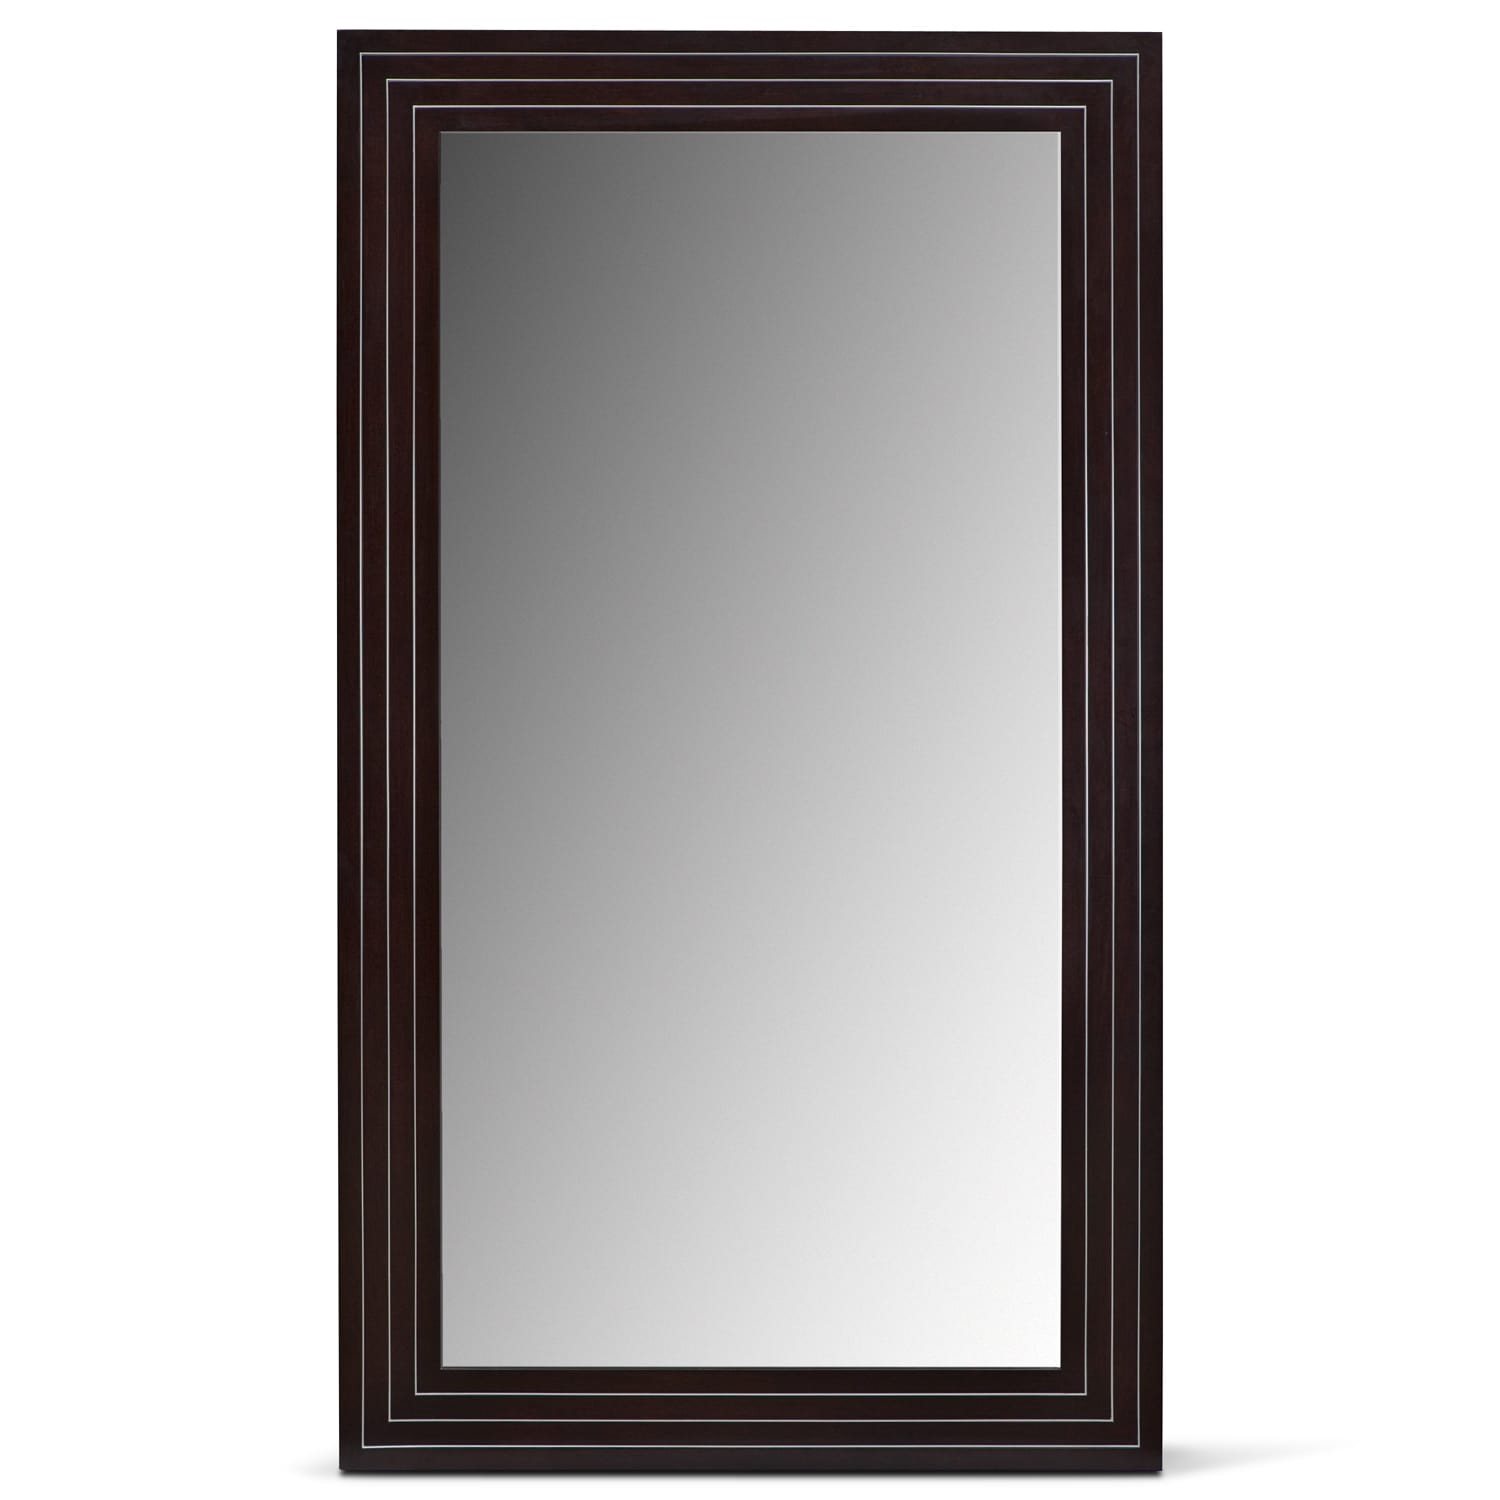 Wyatt Floor Mirror - Black